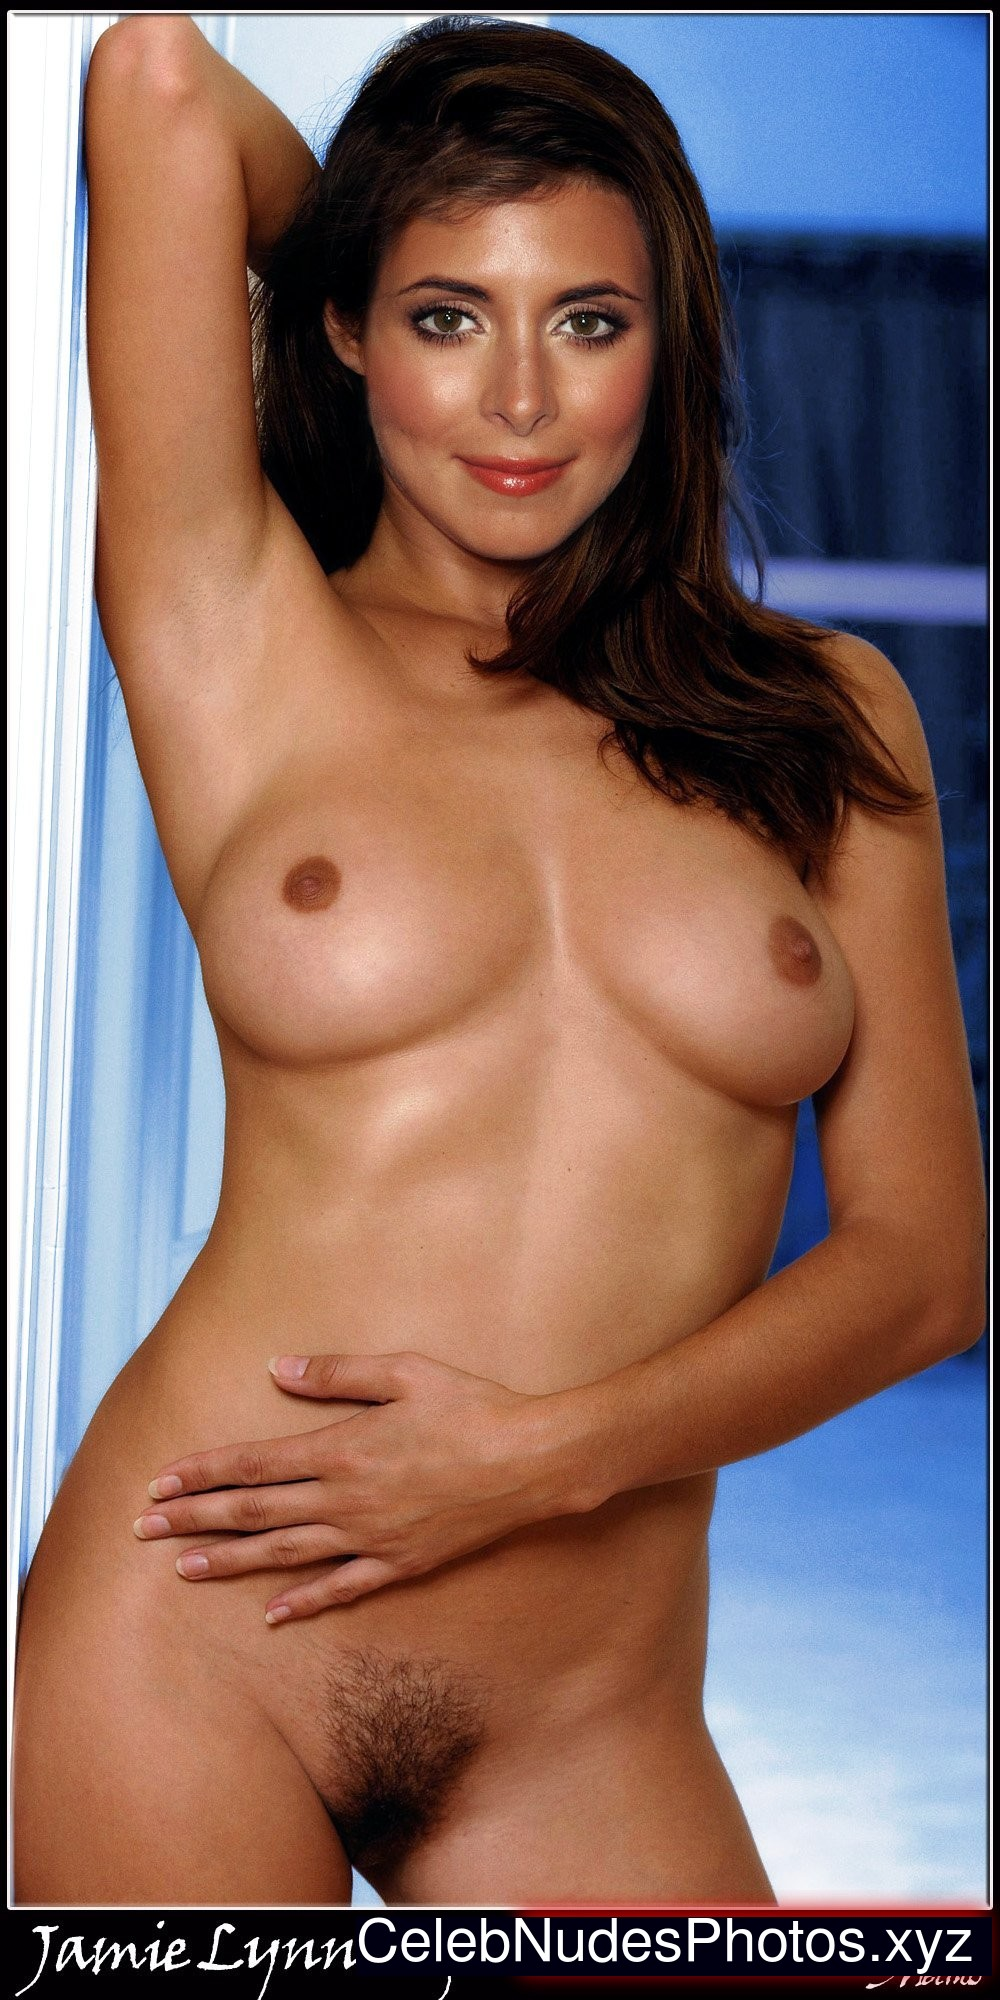 For that Jamie lynn seigler nude for